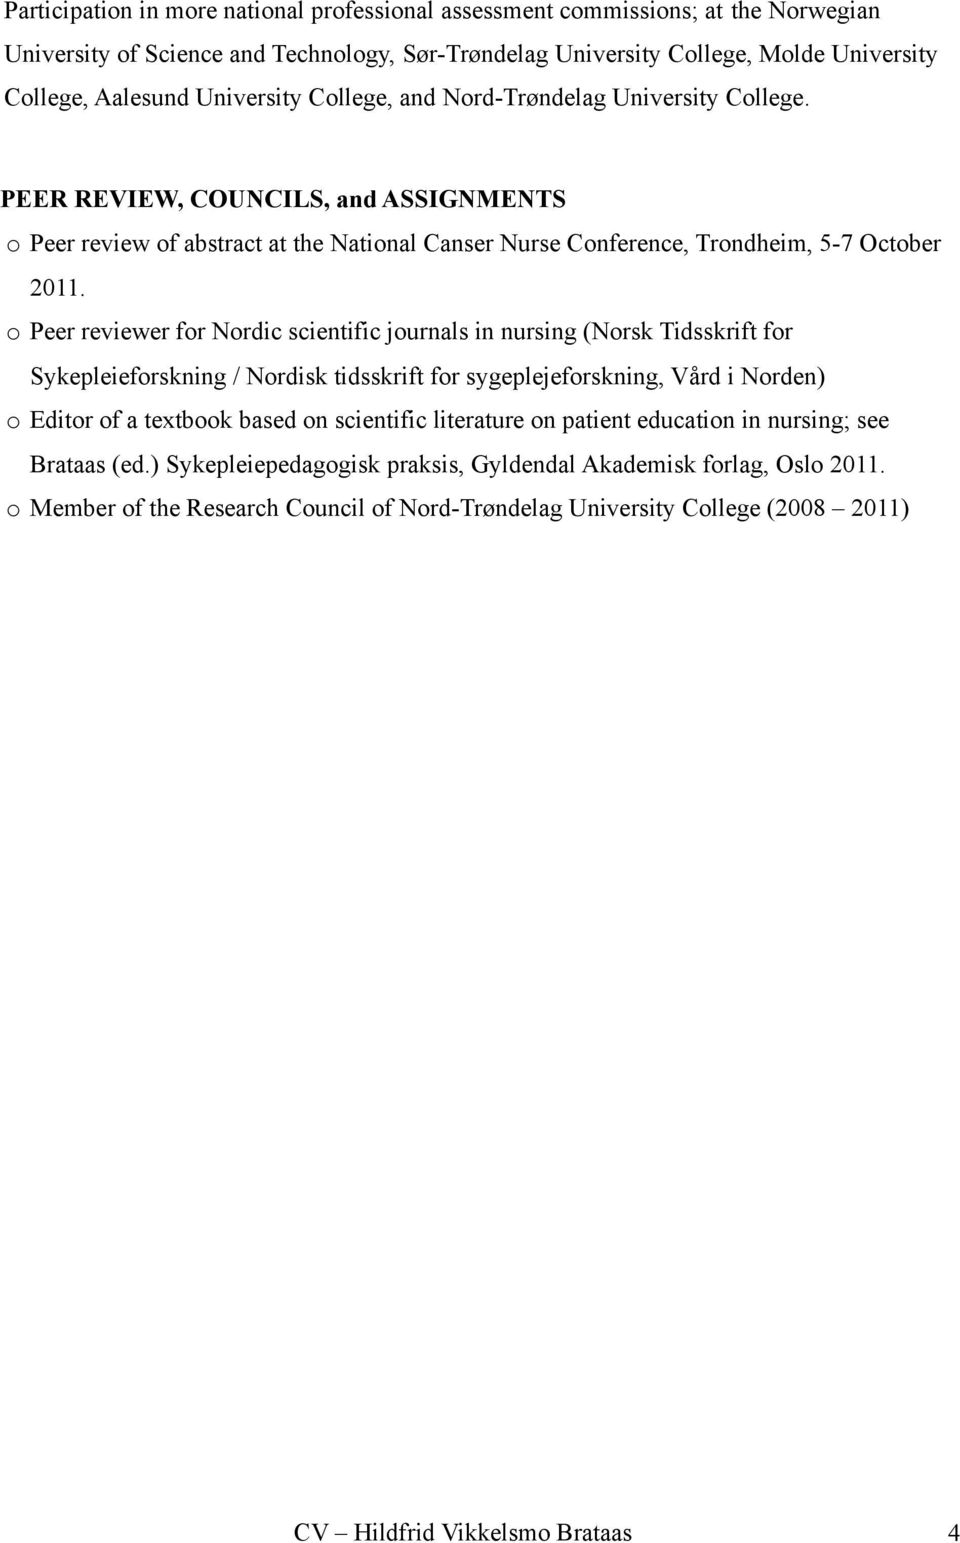 o Peer reviewer for Nordic scientific journals in nursing (Norsk Tidsskrift for Sykepleieforskning / Nordisk tidsskrift for sygeplejeforskning, Vård i Norden) o Editor of a textbook based on